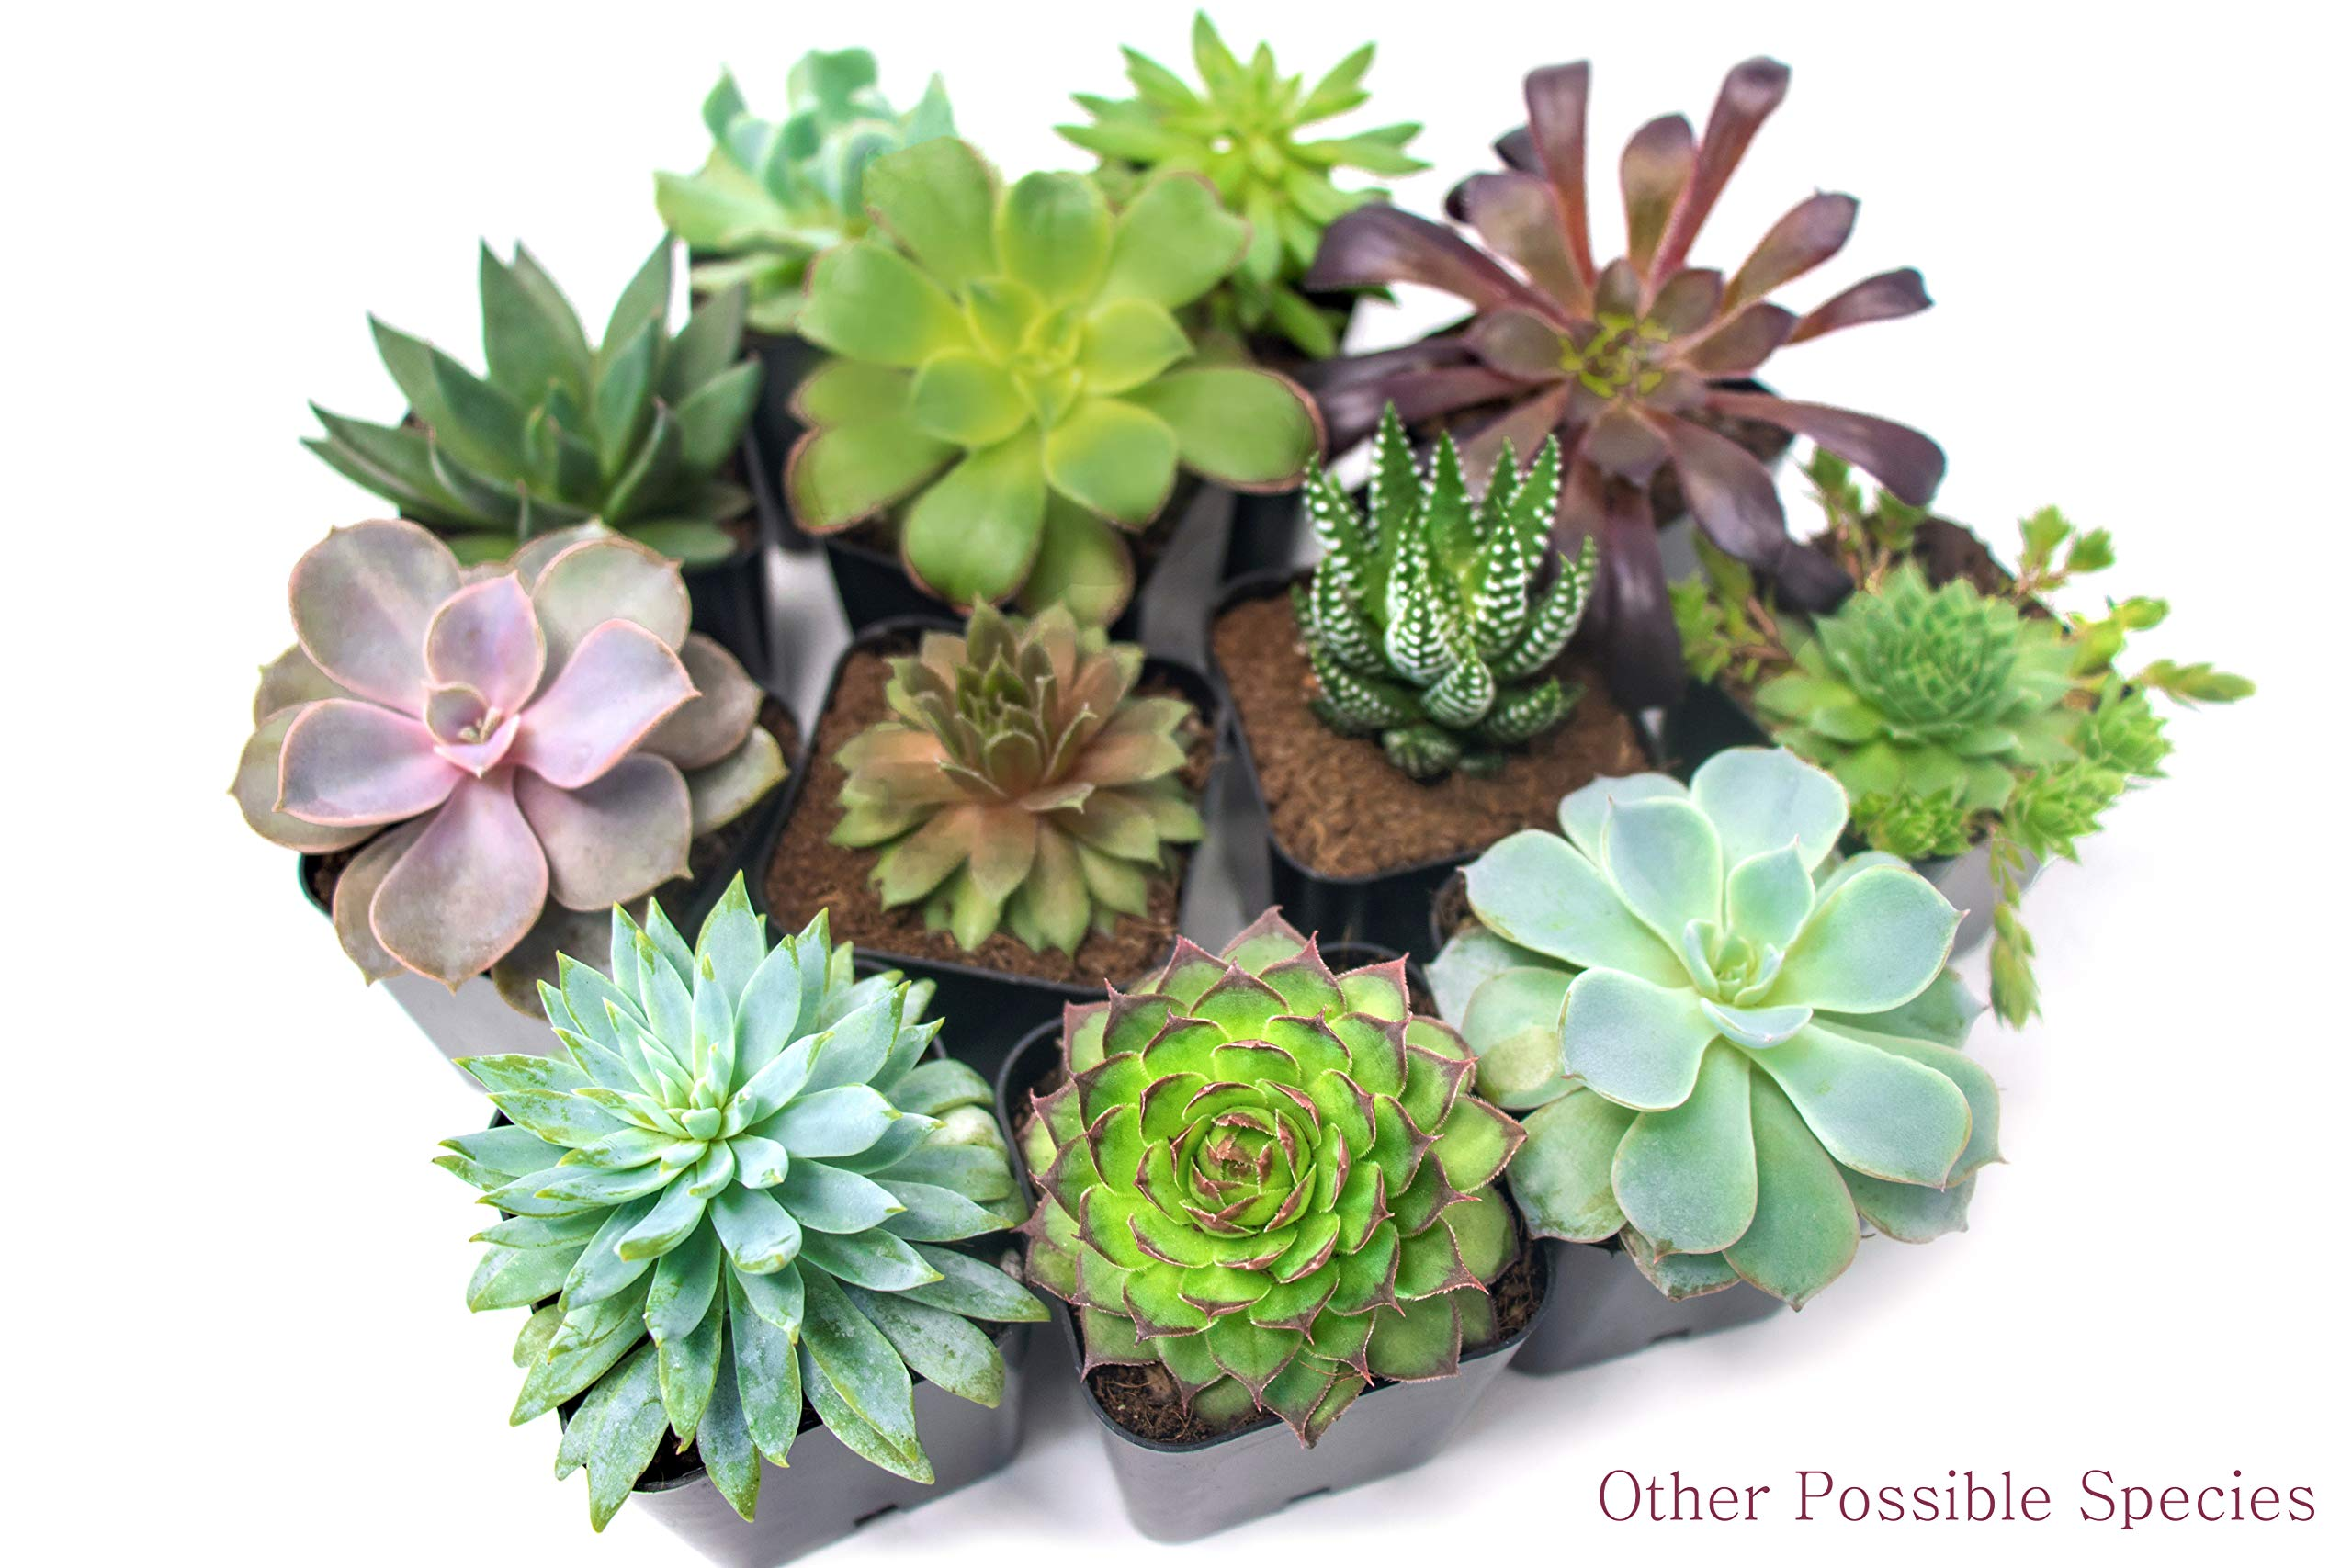 Succulent Plants (5 Pack), Fully Rooted in Planter Pots with Soil - Real Live Potted Succulents / Unique Indoor Cactus… 6 HAND SELECTED: Every pack of succulents we send is hand-picked. You will receive a unique collection of species that are FULLY ROOTED IN 2 INCH POTS, which will be similar to the product photos (see photo 2 for scale). Note that we rotate our nursery stock often, so the exact species we send changes every week. THE EASIEST HOUSE PLANTS: More appealing than artificial plastic or fake faux plants, and care is a cinch. If you think you can't keep houseplants alive, you're wrong; our succulents don't require fertilizer and can be planted in a decorative pot of your choice within seconds. DIY HOME DECOR: The possibilities are only limited by your imagination; display them in a plant holder, a wall mount, a geometric glass vase, or even in a live wreath. Because of their amazingly low care requirements, they can even make the perfect desk centerpiece for your office.